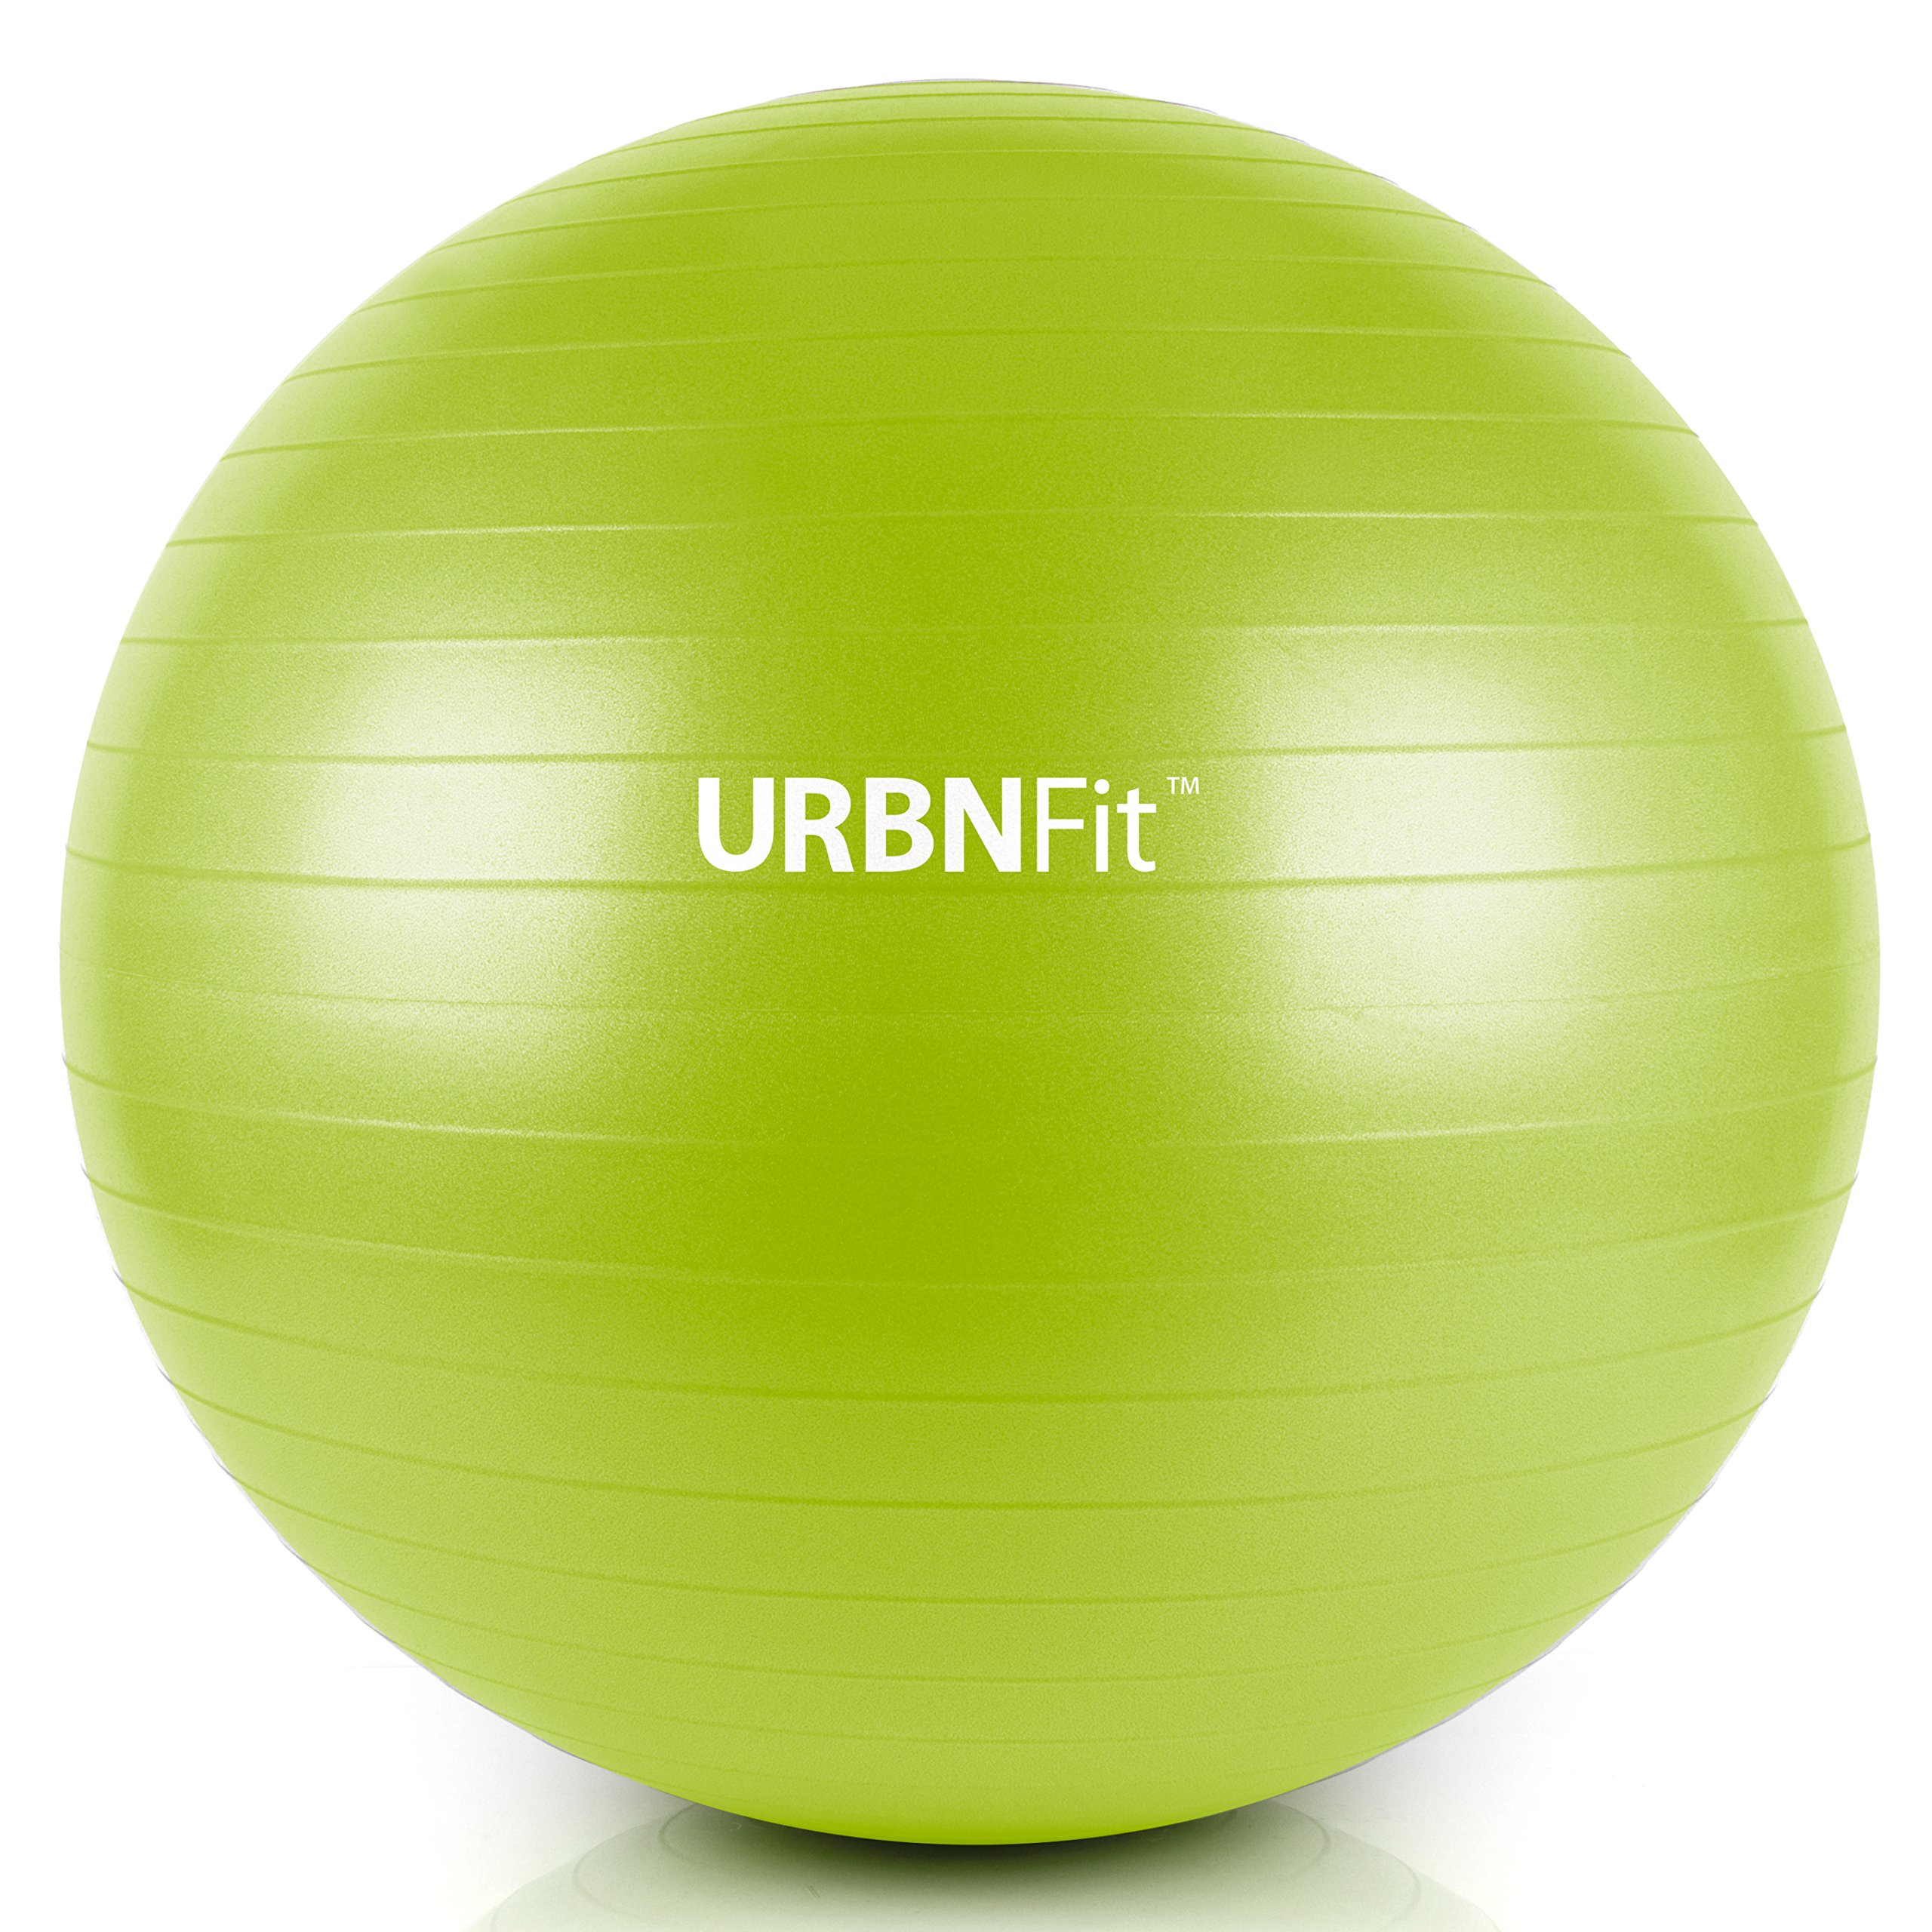 URBNFit Exercise Ball (Multiple Sizes) for Fitness, Stability, Balance & Yoga - Workout Guide & Quick Pump Included - Anit Burst Professional Quality Design (Green, 55CM) by URBNFit (Image #1)